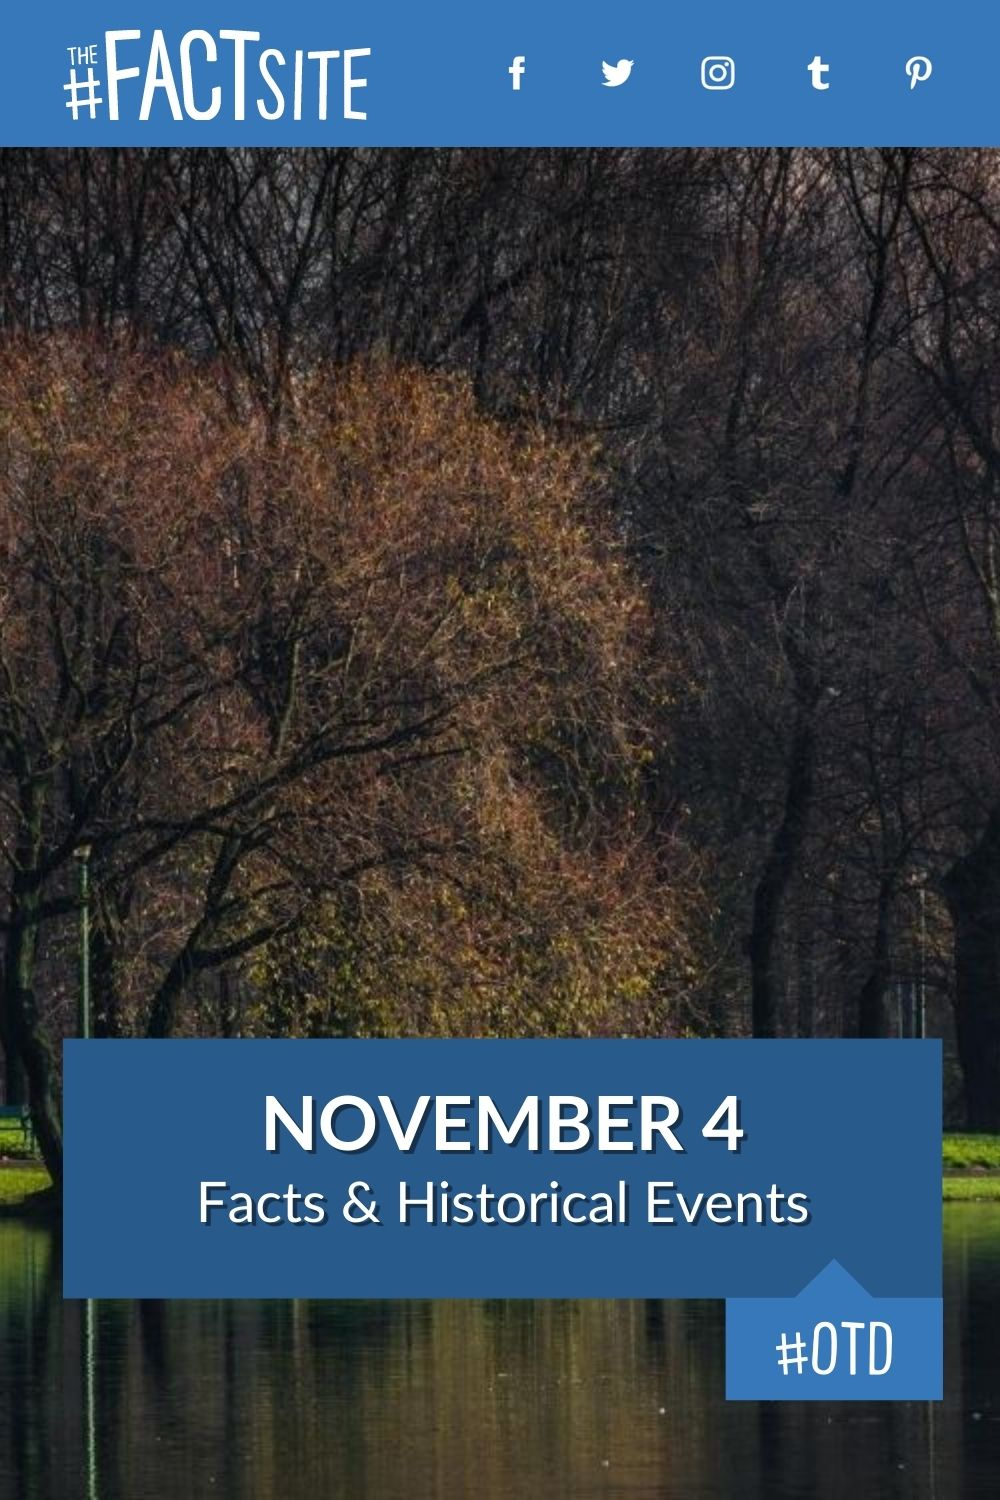 Facts & Historic Events That Happened on November 4